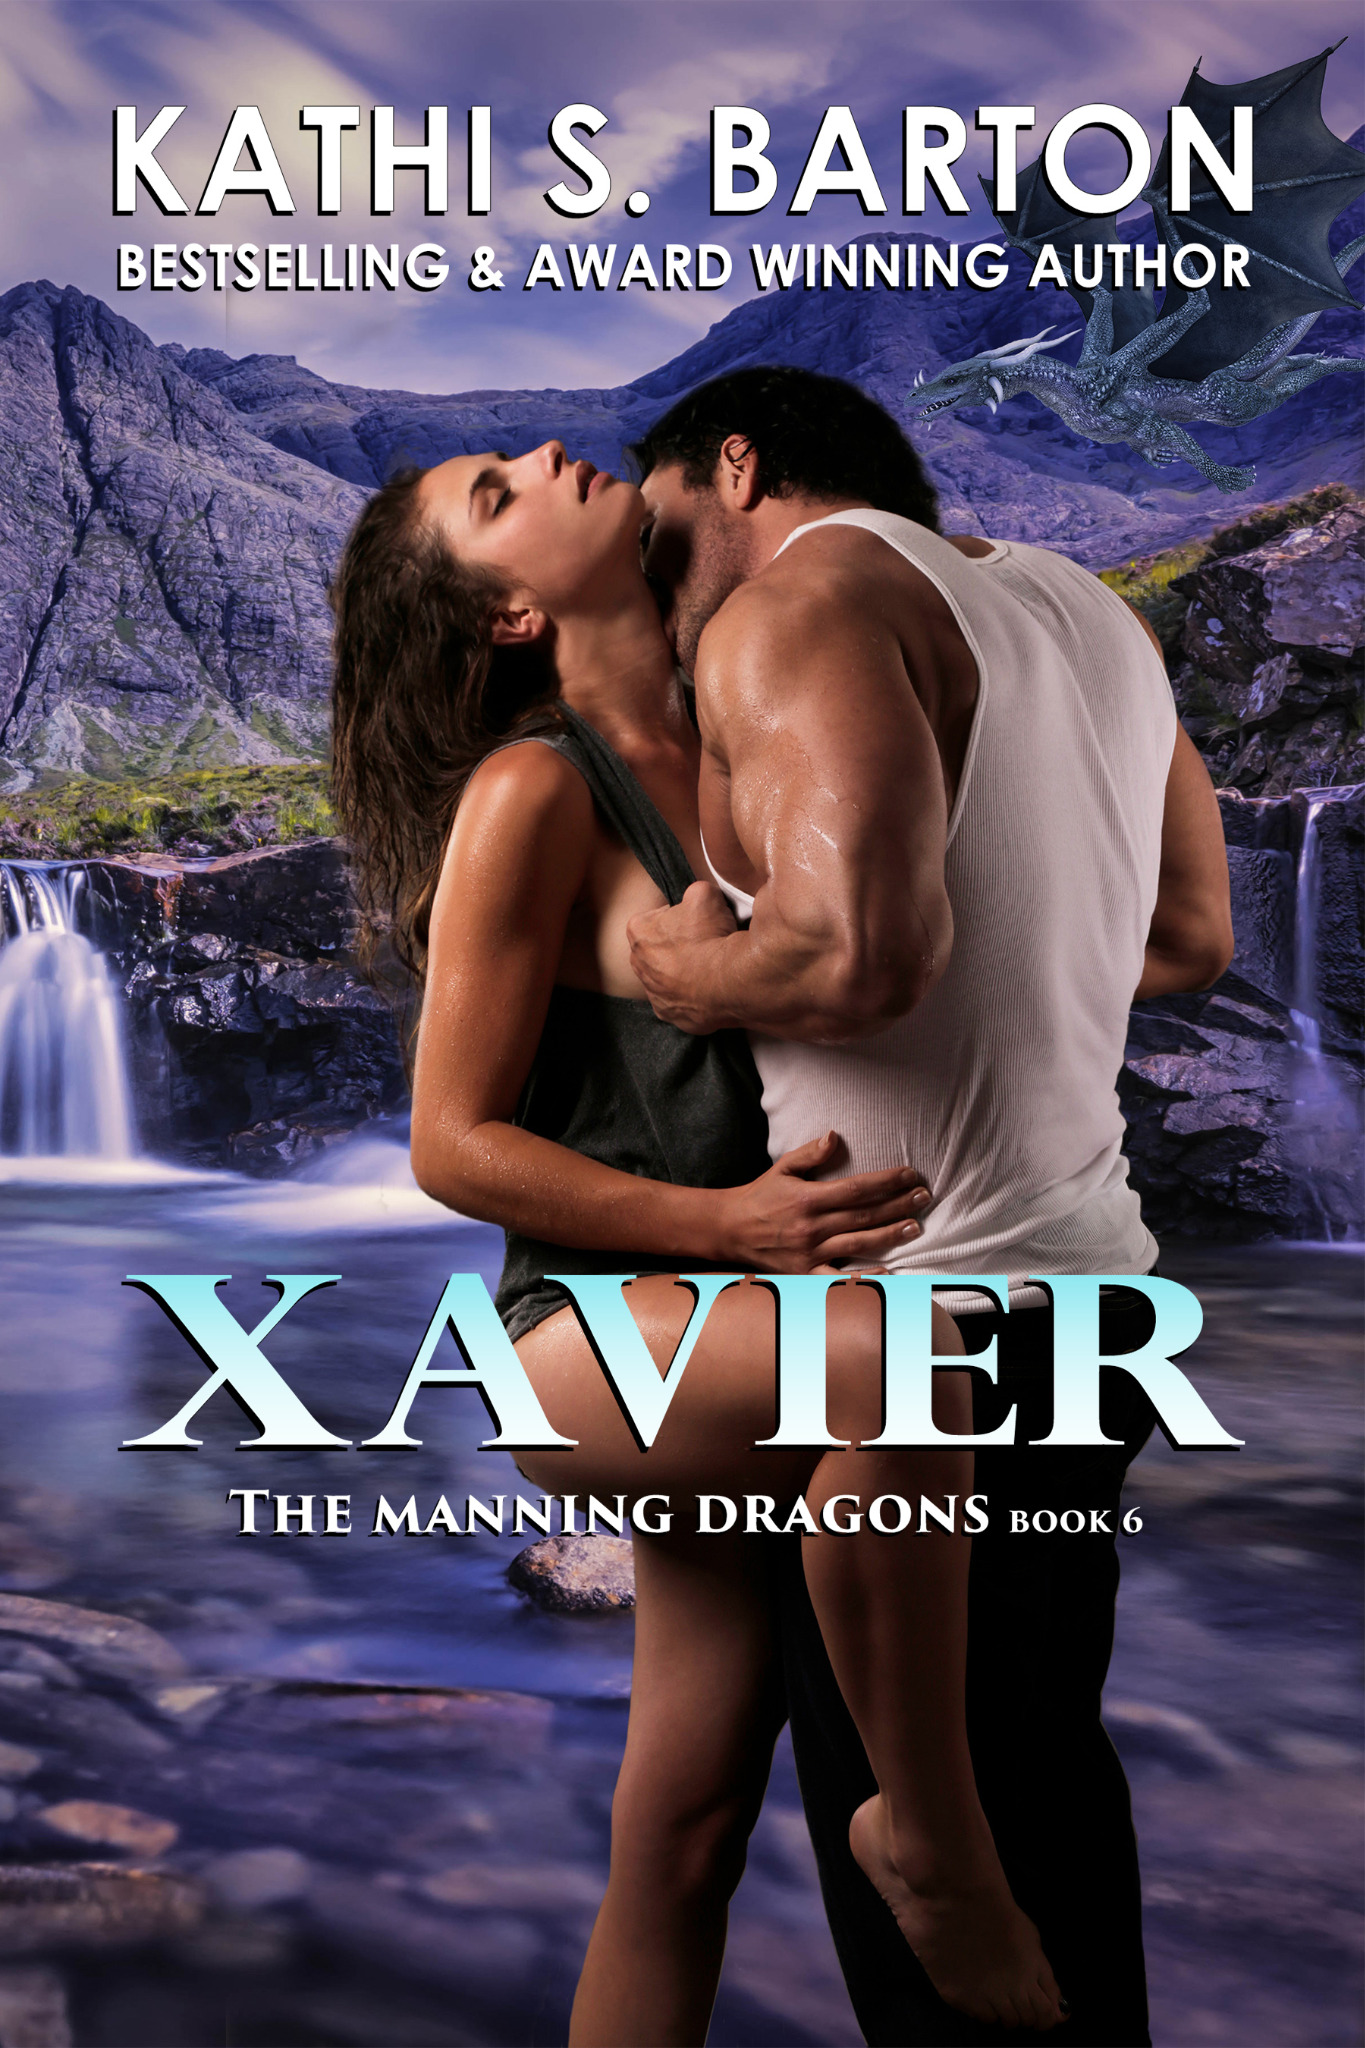 Xavier - The Manning Dragons Book 6